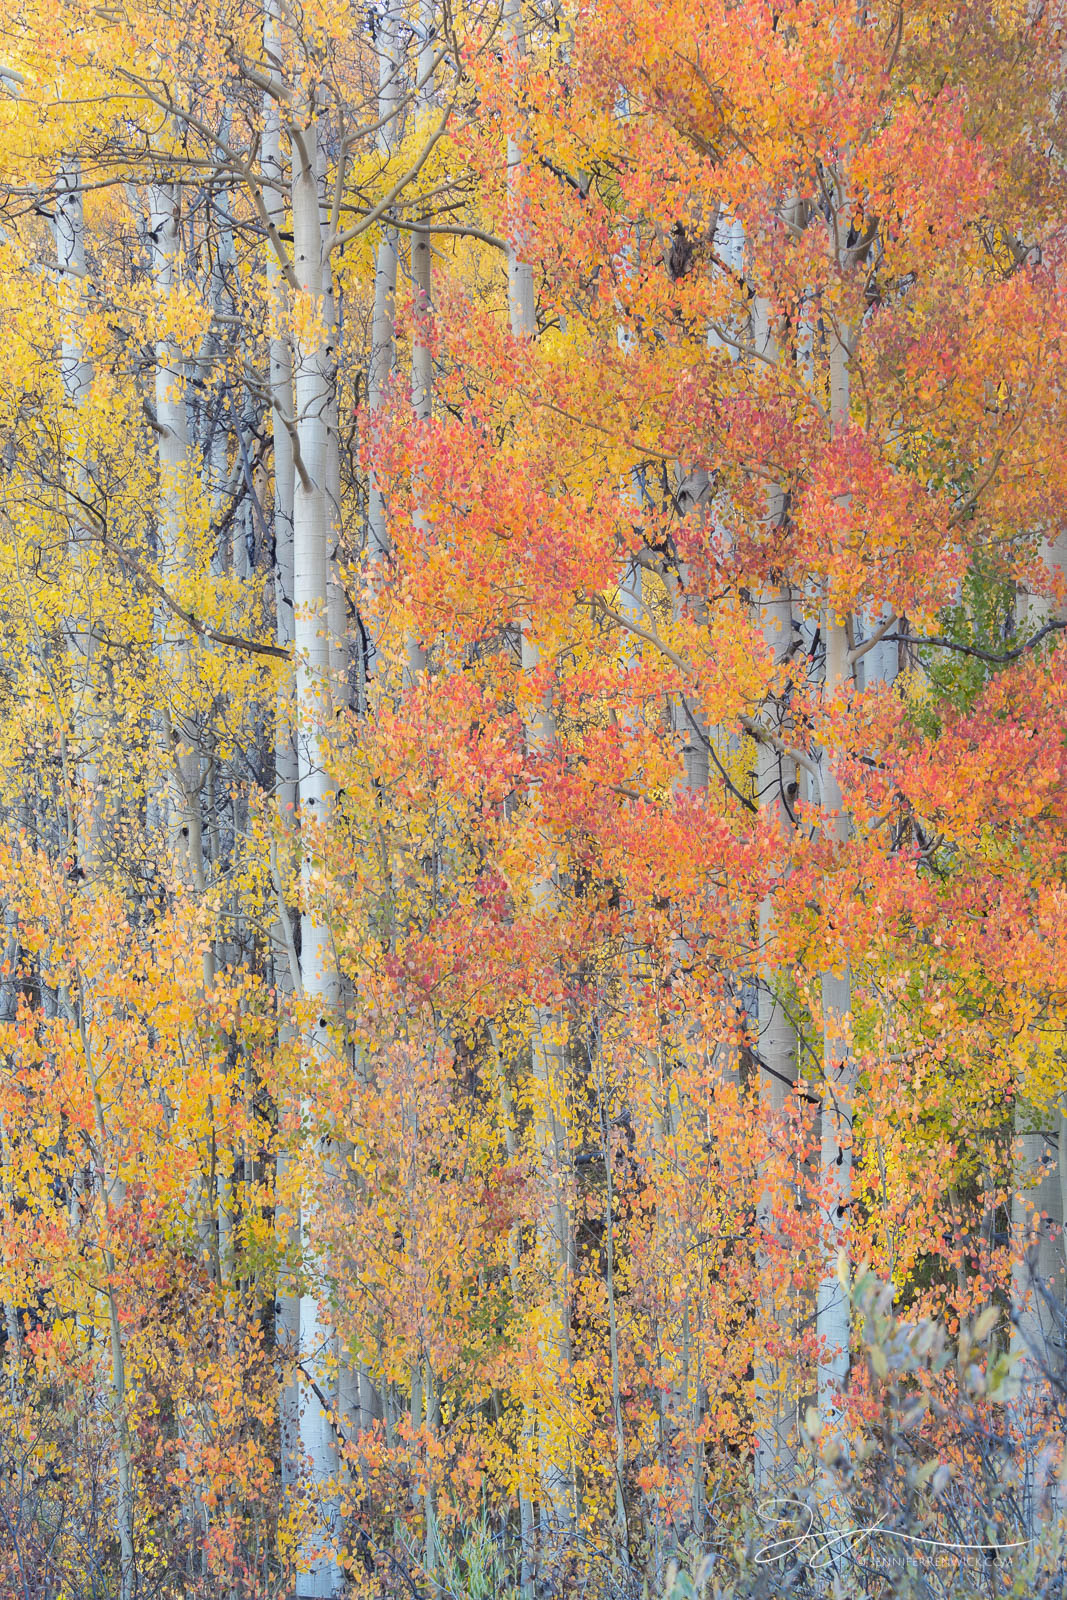 A stand of orange aspens glows in the early morning light.